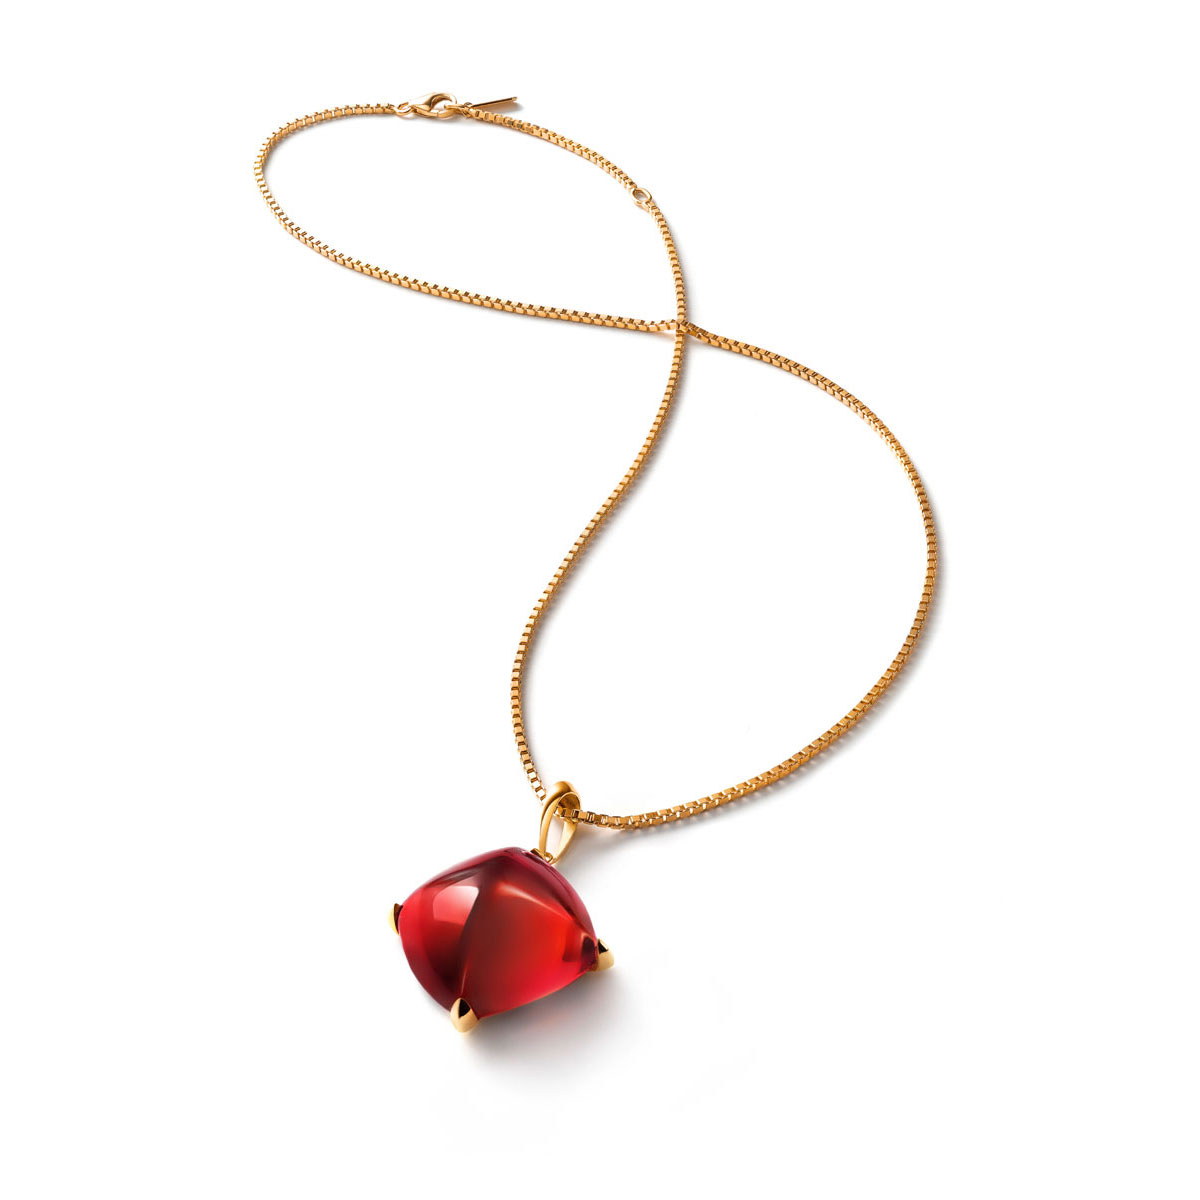 Baccarat Medicis Large Necklace Vermeil Gold, Red Mirror